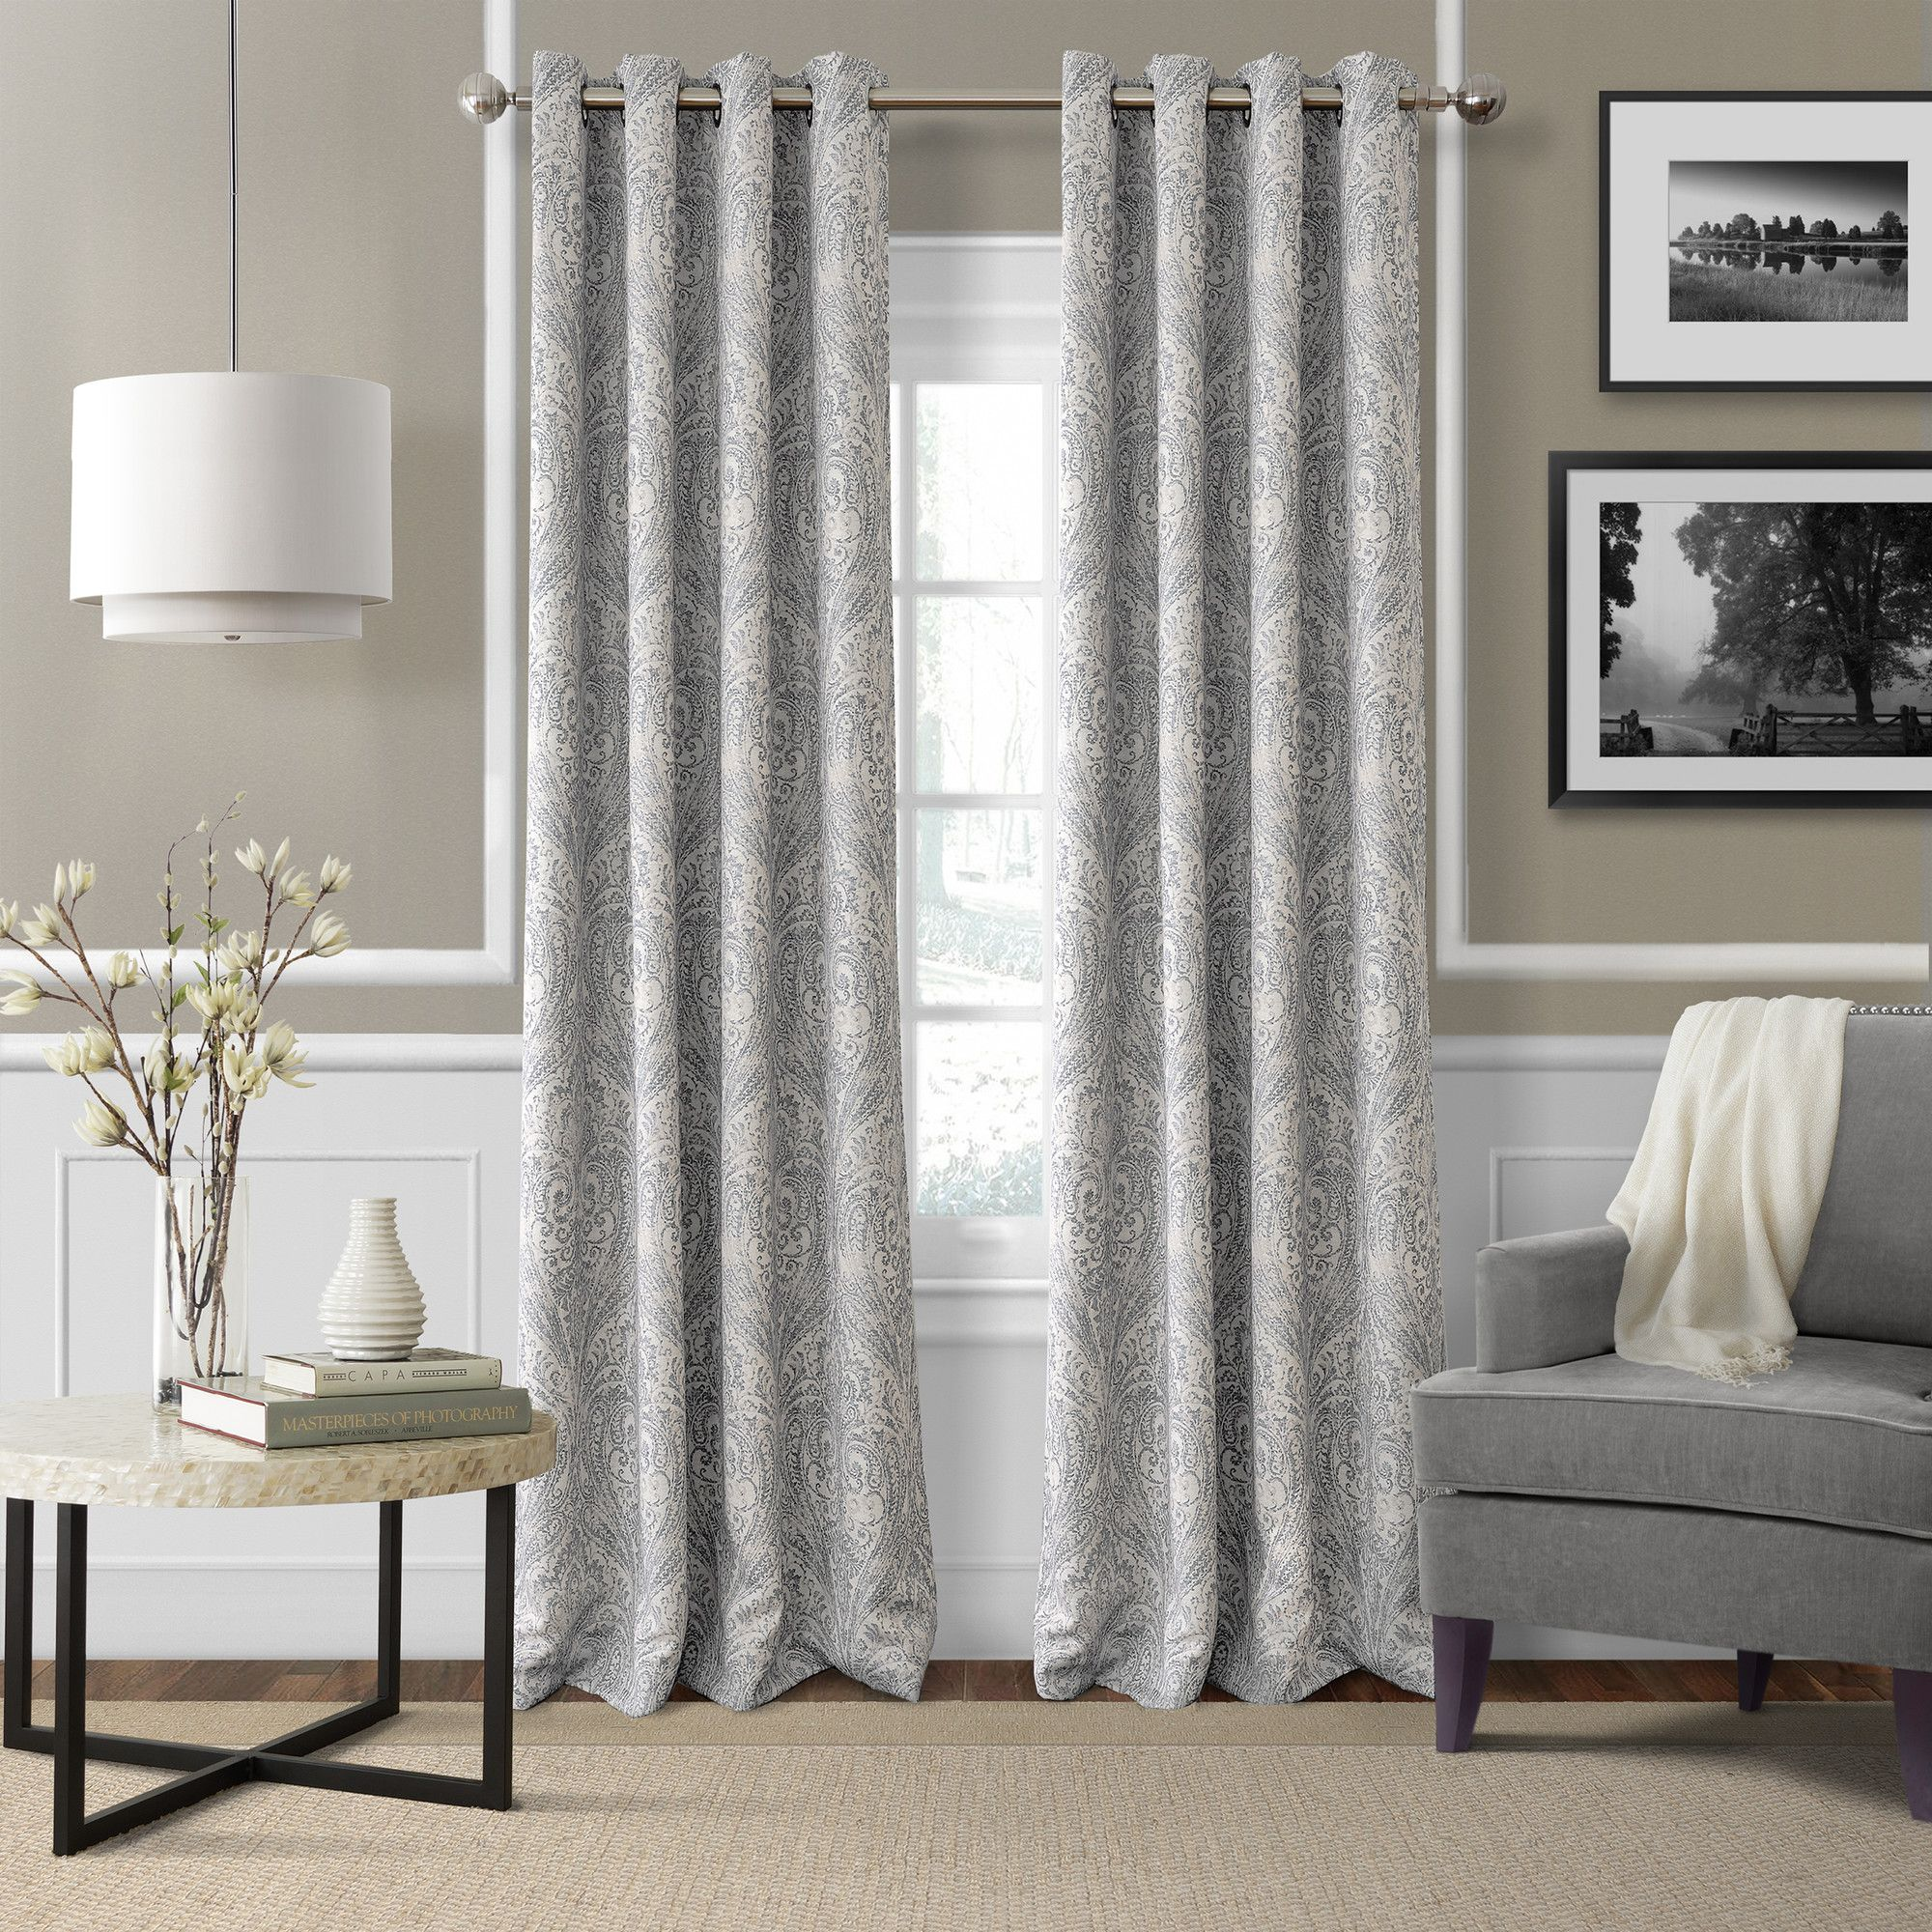 window free printed curtain blue panel curtains paisley xplrvr treatments park madison dermot love cotton